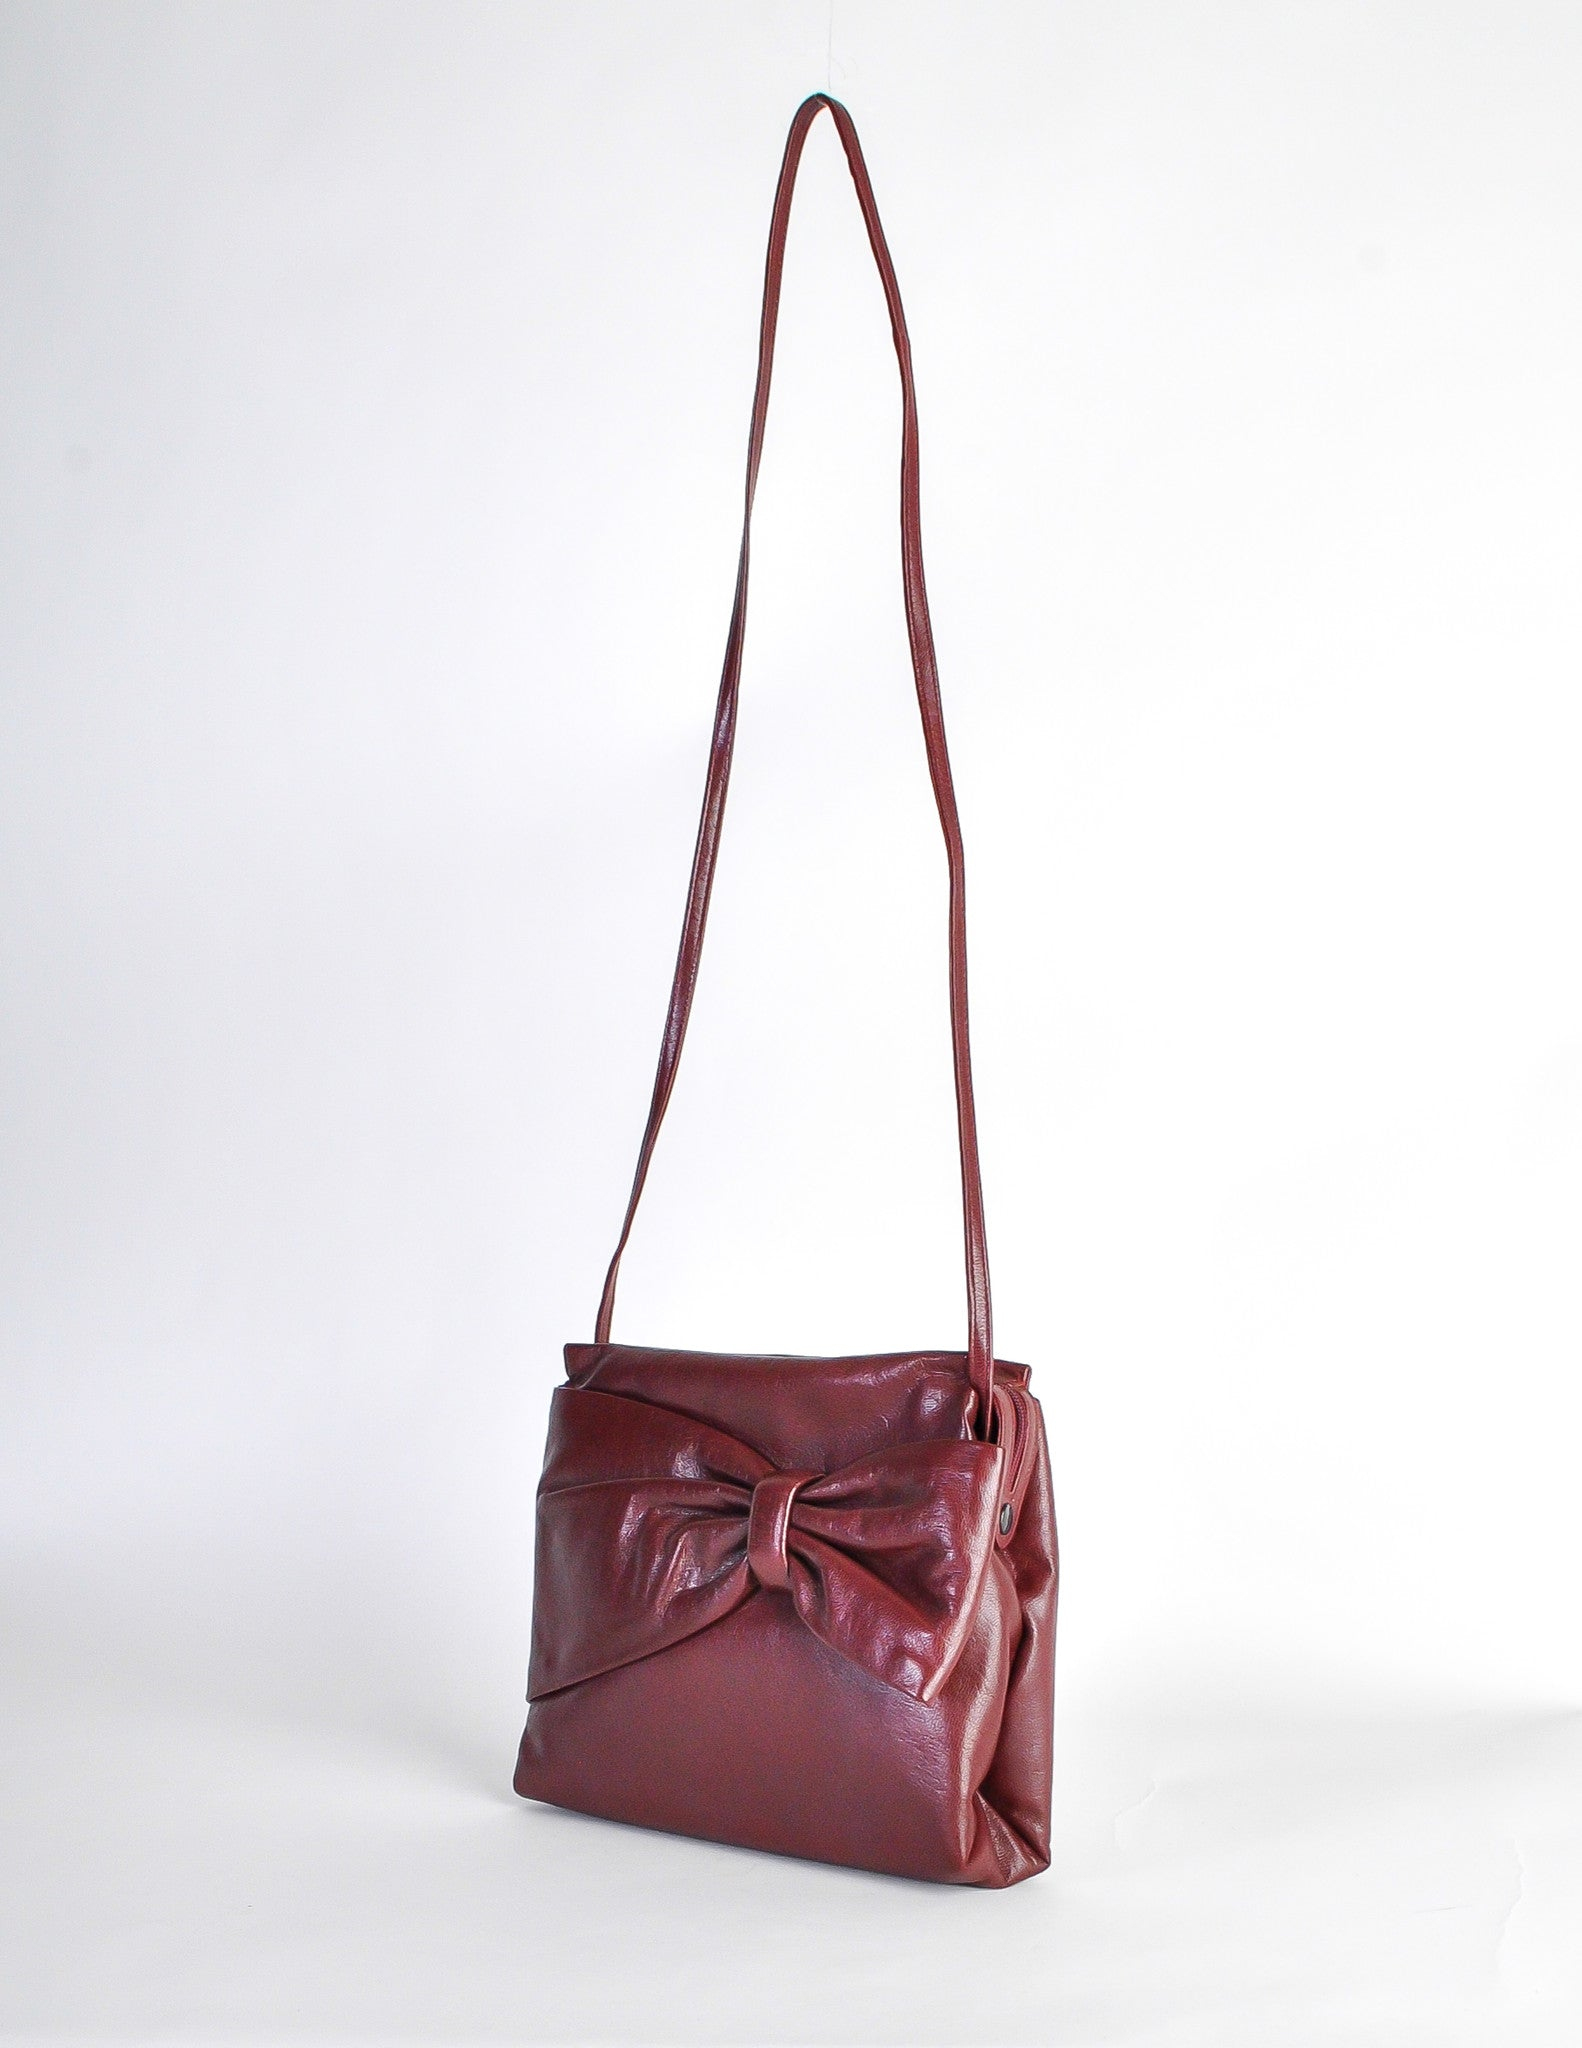 2eb441a3 Fendi Vintage Burgundy Leather Bow Front Bag - from Amarcord ...